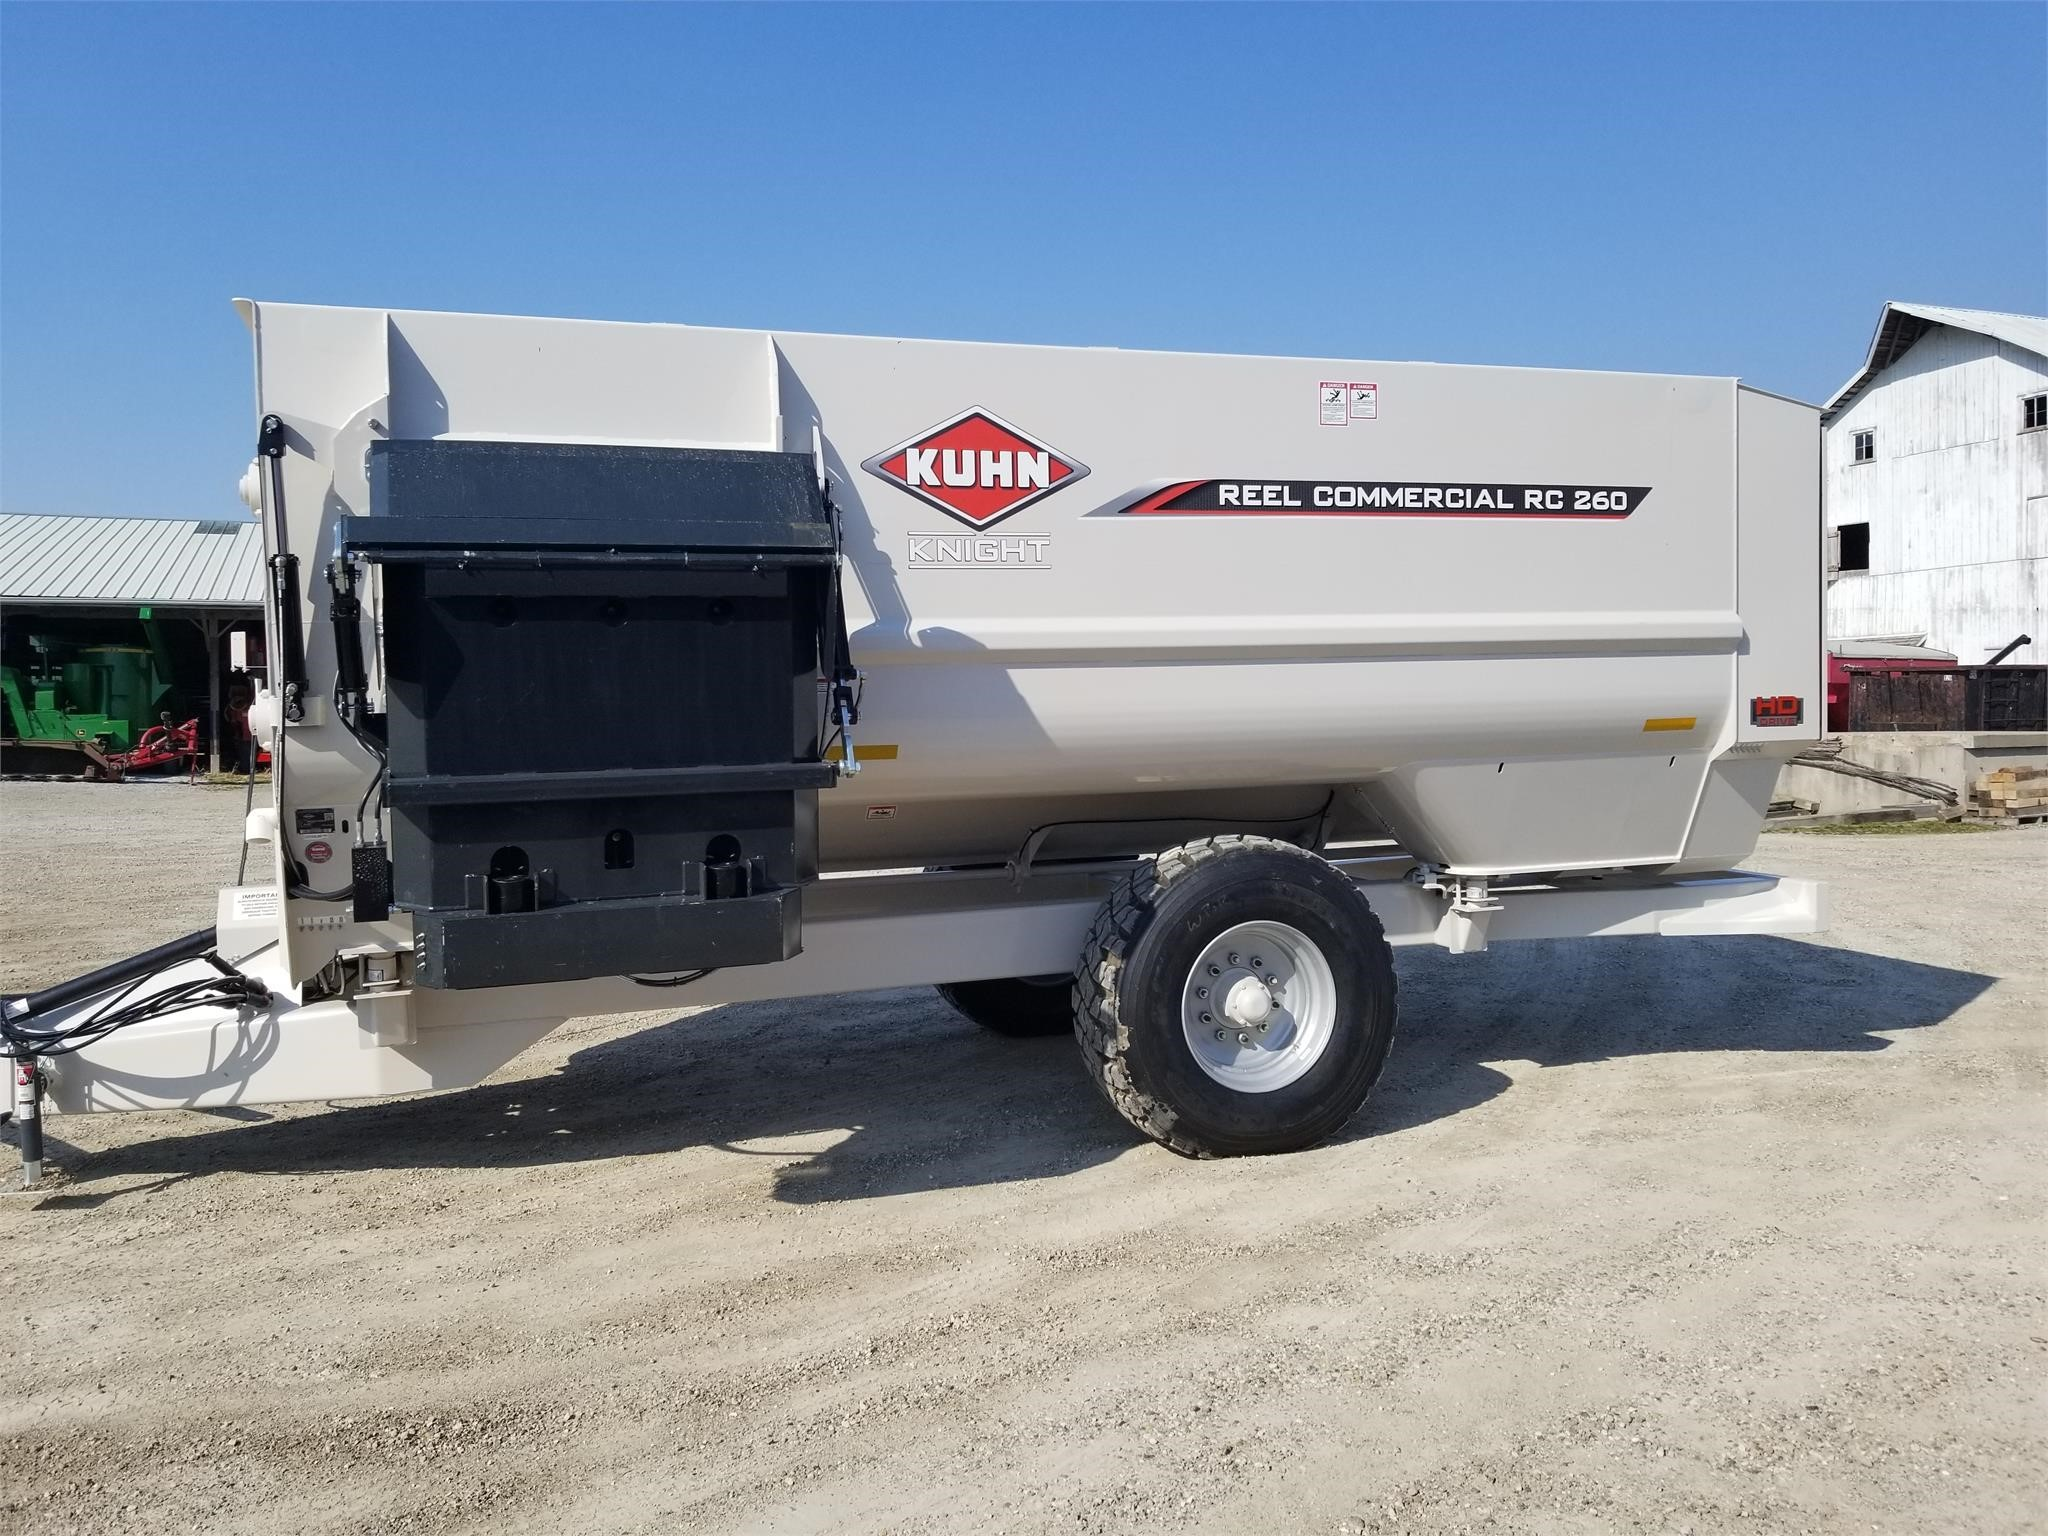 2021 Kuhn Knight RC260 Grinders and Mixer